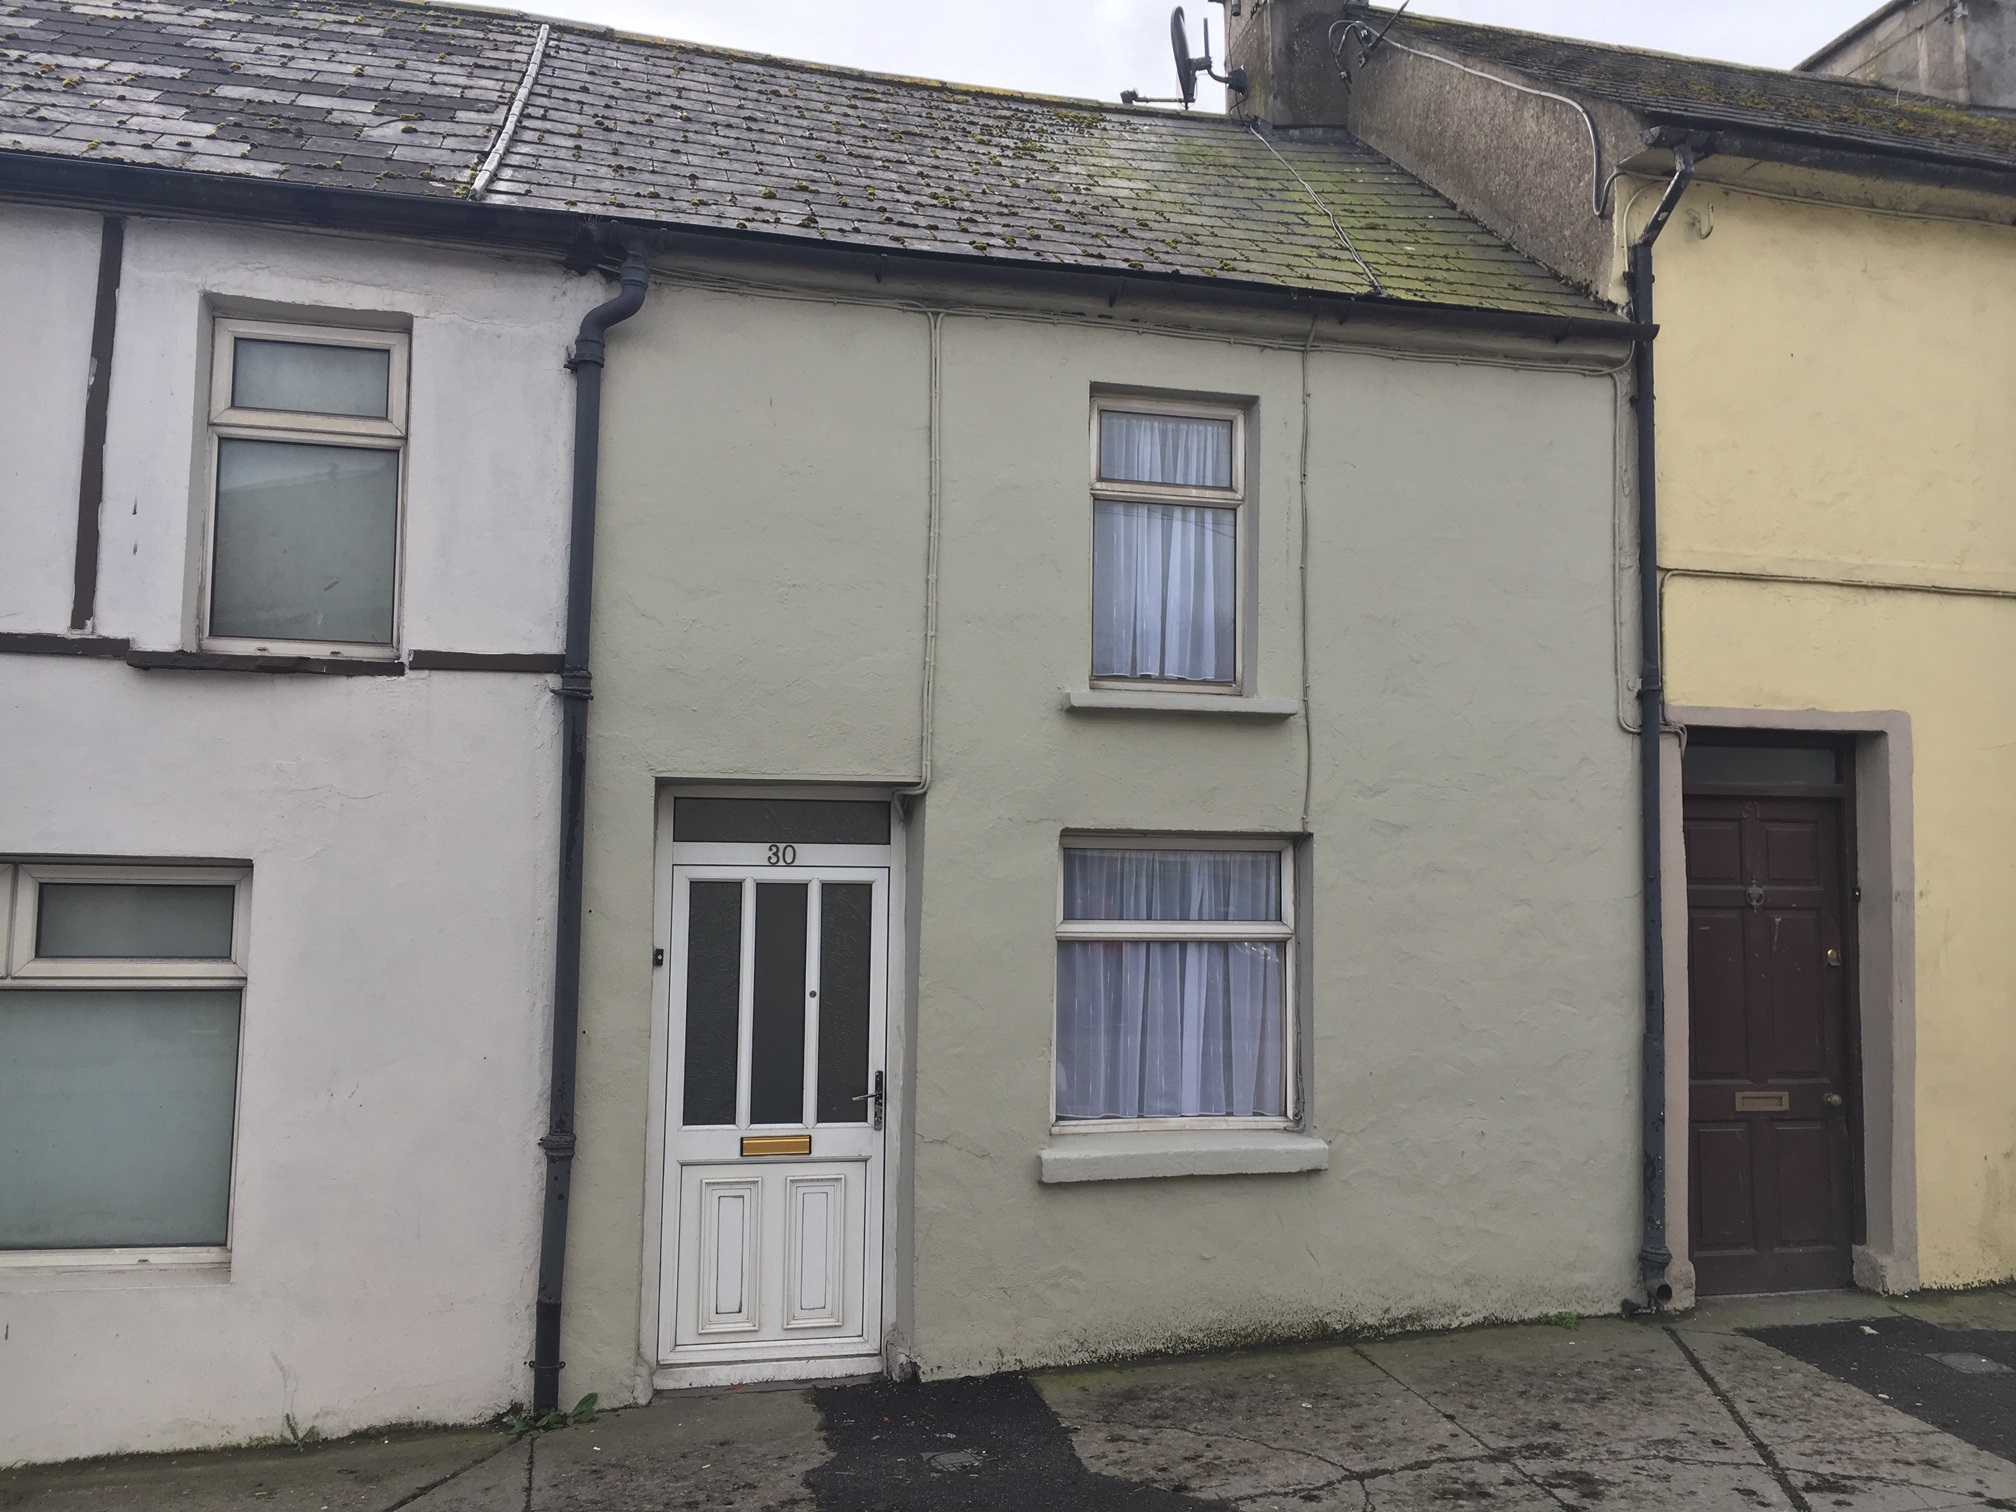 30 Upper Church St, Tipperary Town, Co. Tipperary